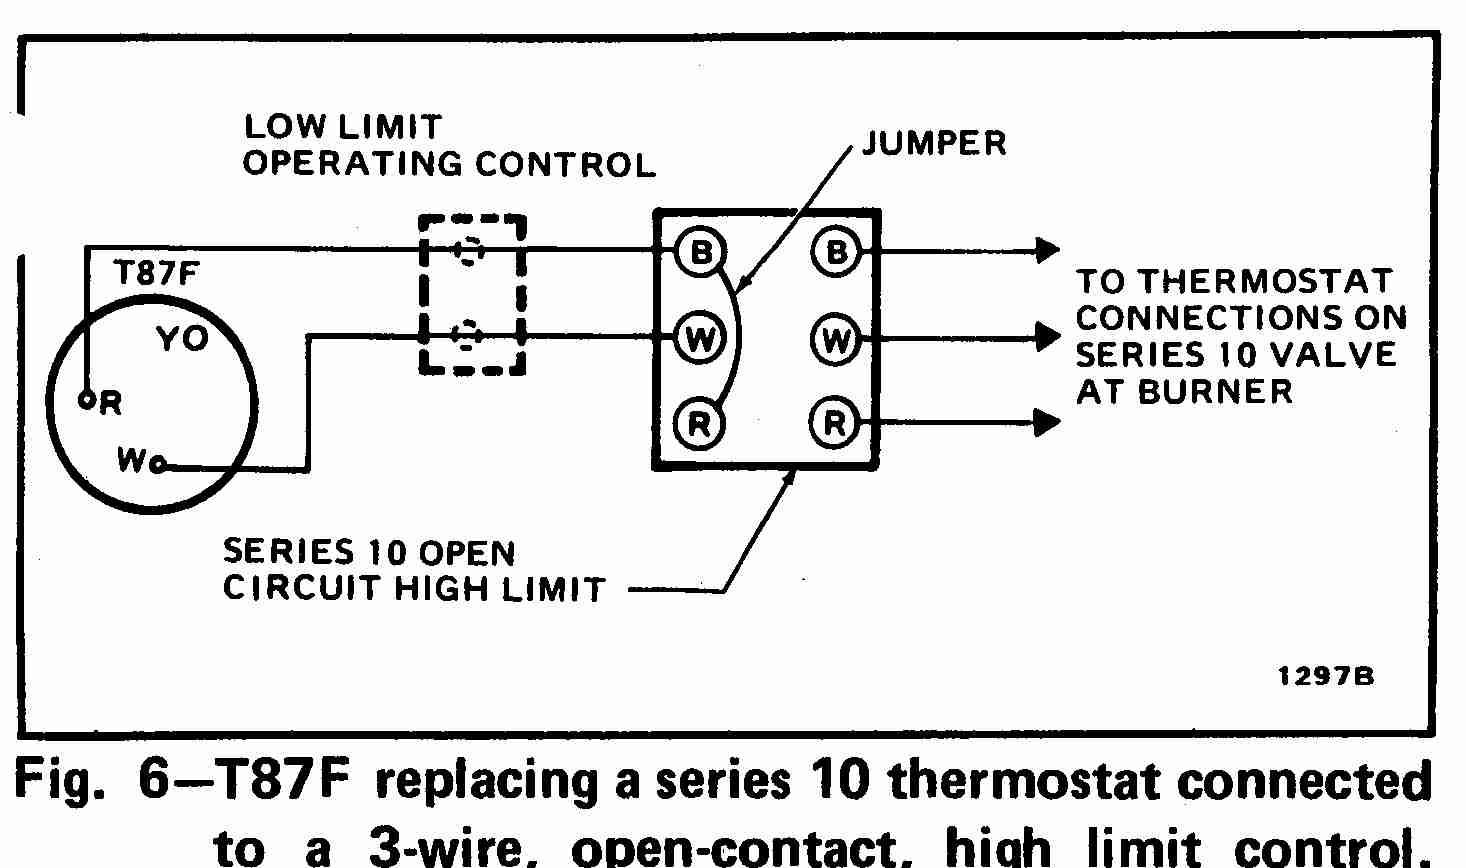 TT_T87F_0002_3WHL_DJF room thermostat wiring diagrams for hvac systems fcu wiring diagram at fashall.co